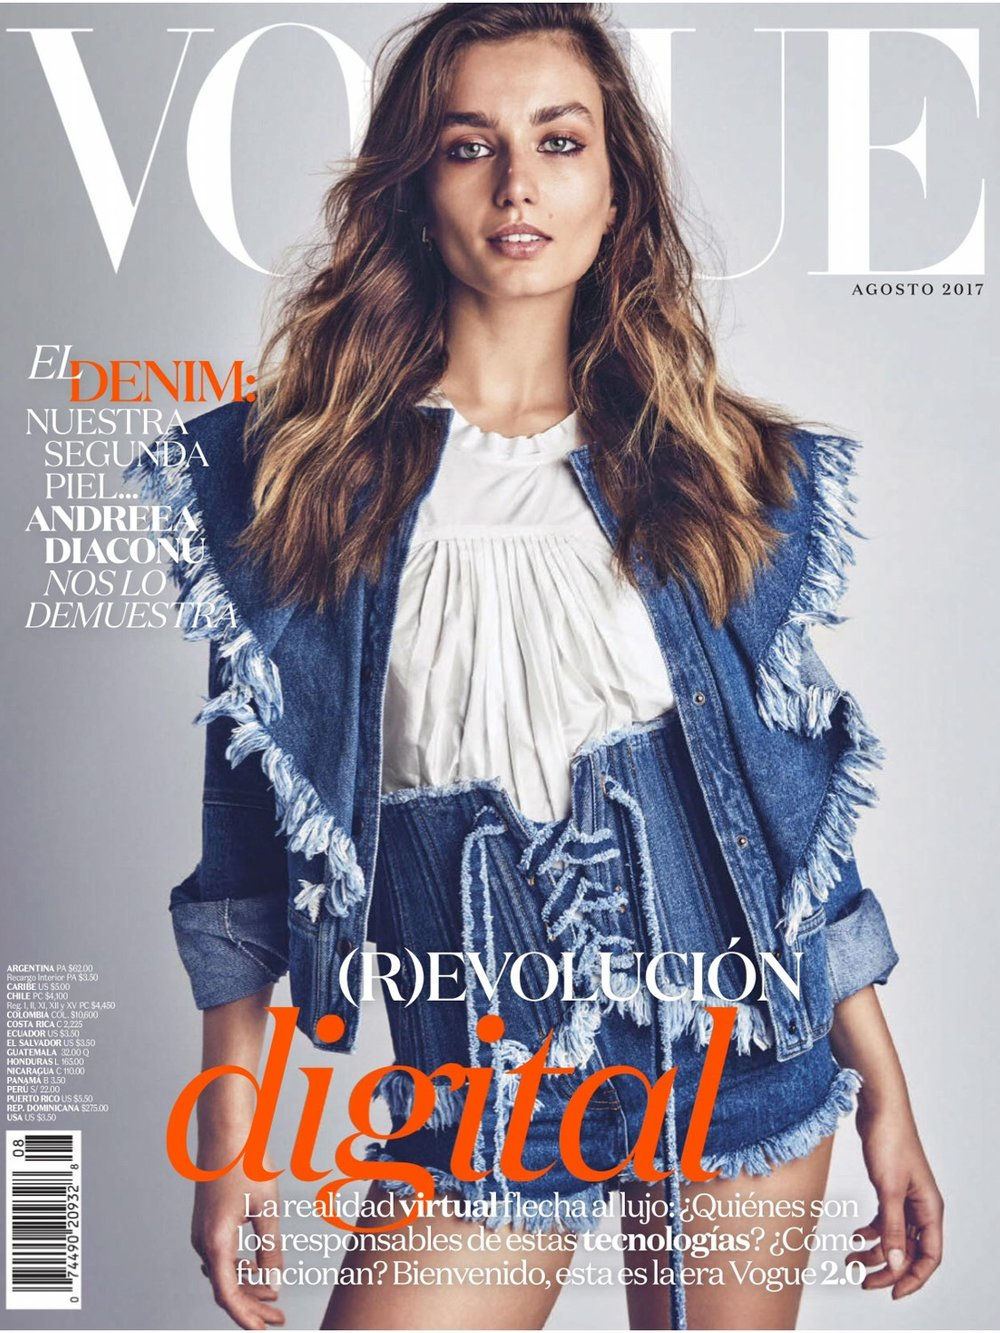 VOGUE COVERA AUG 2017.jpg